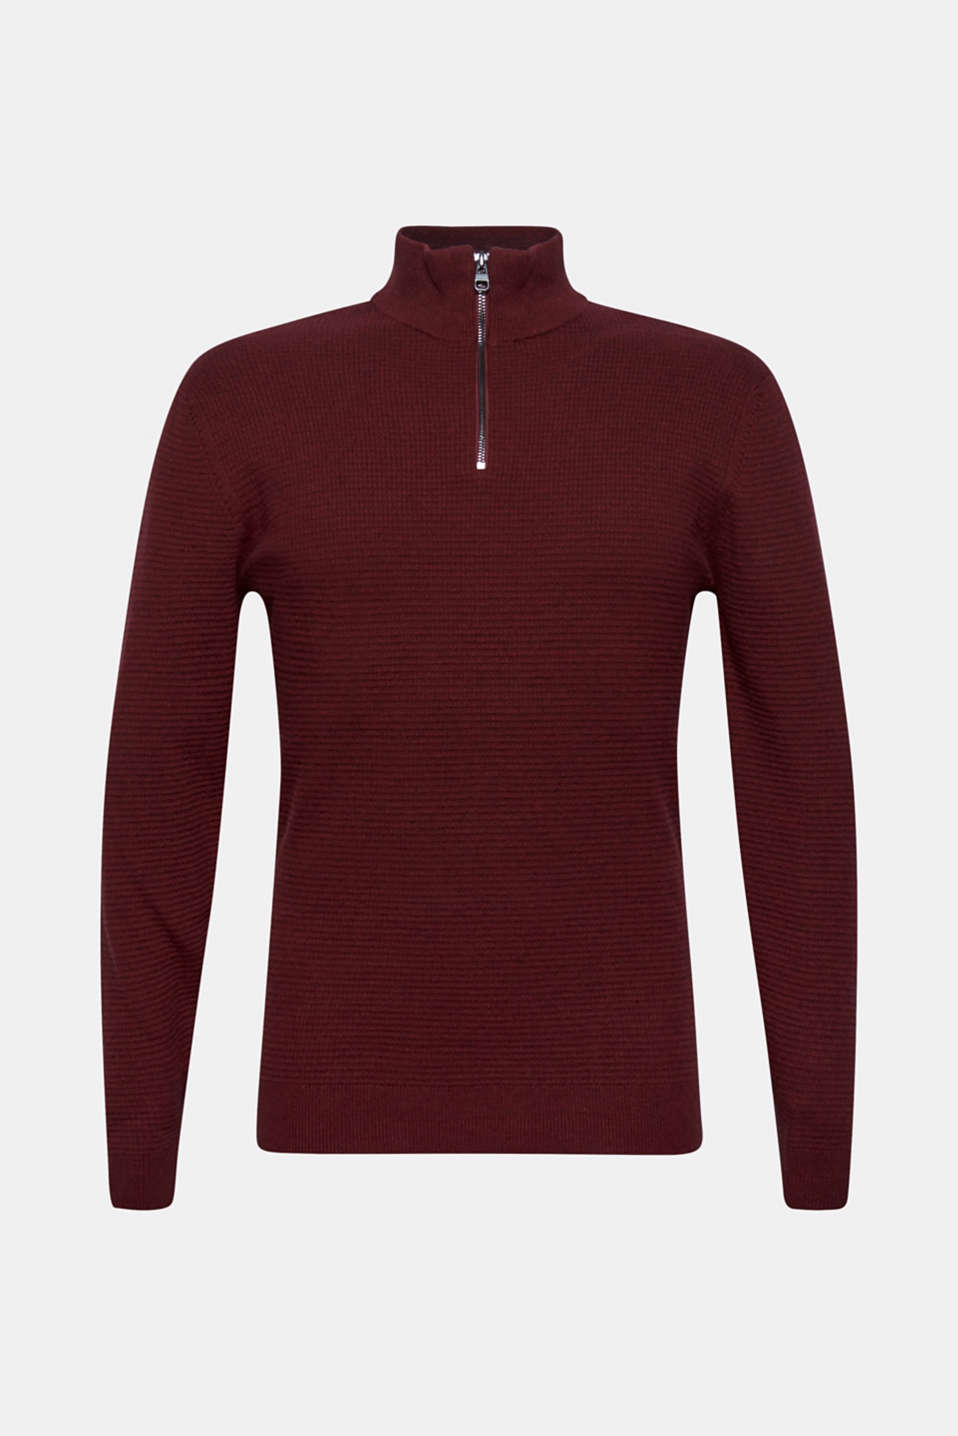 With cashmere: Textured knit jumper, DARK RED, detail image number 6